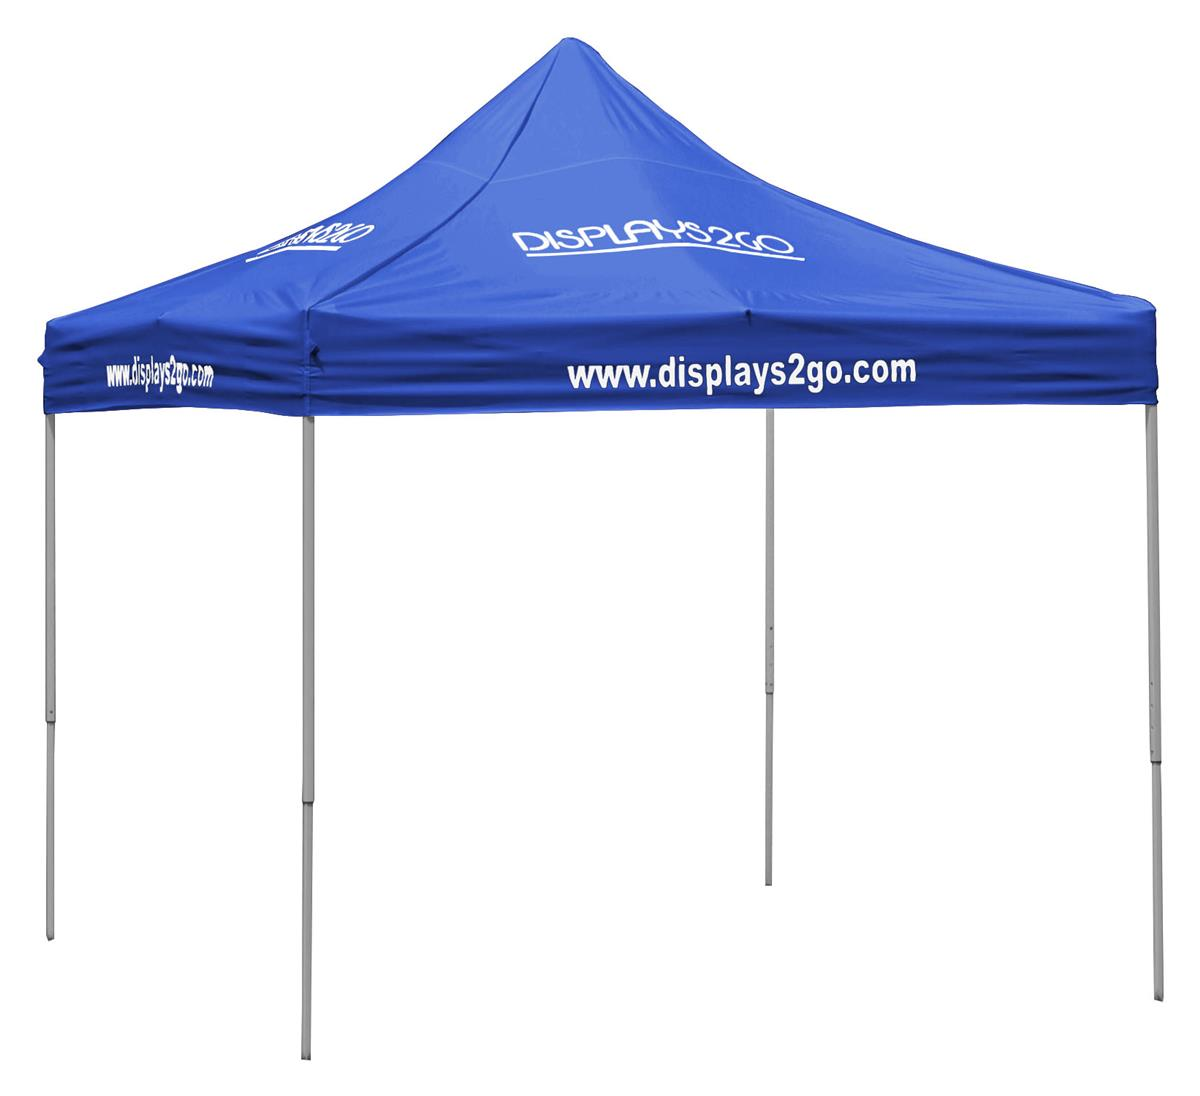 sc 1 st  Displays2go & Royal Blue Pop Up Tent | 10u0027 x 10u0027 Canopy with 8 Imprints